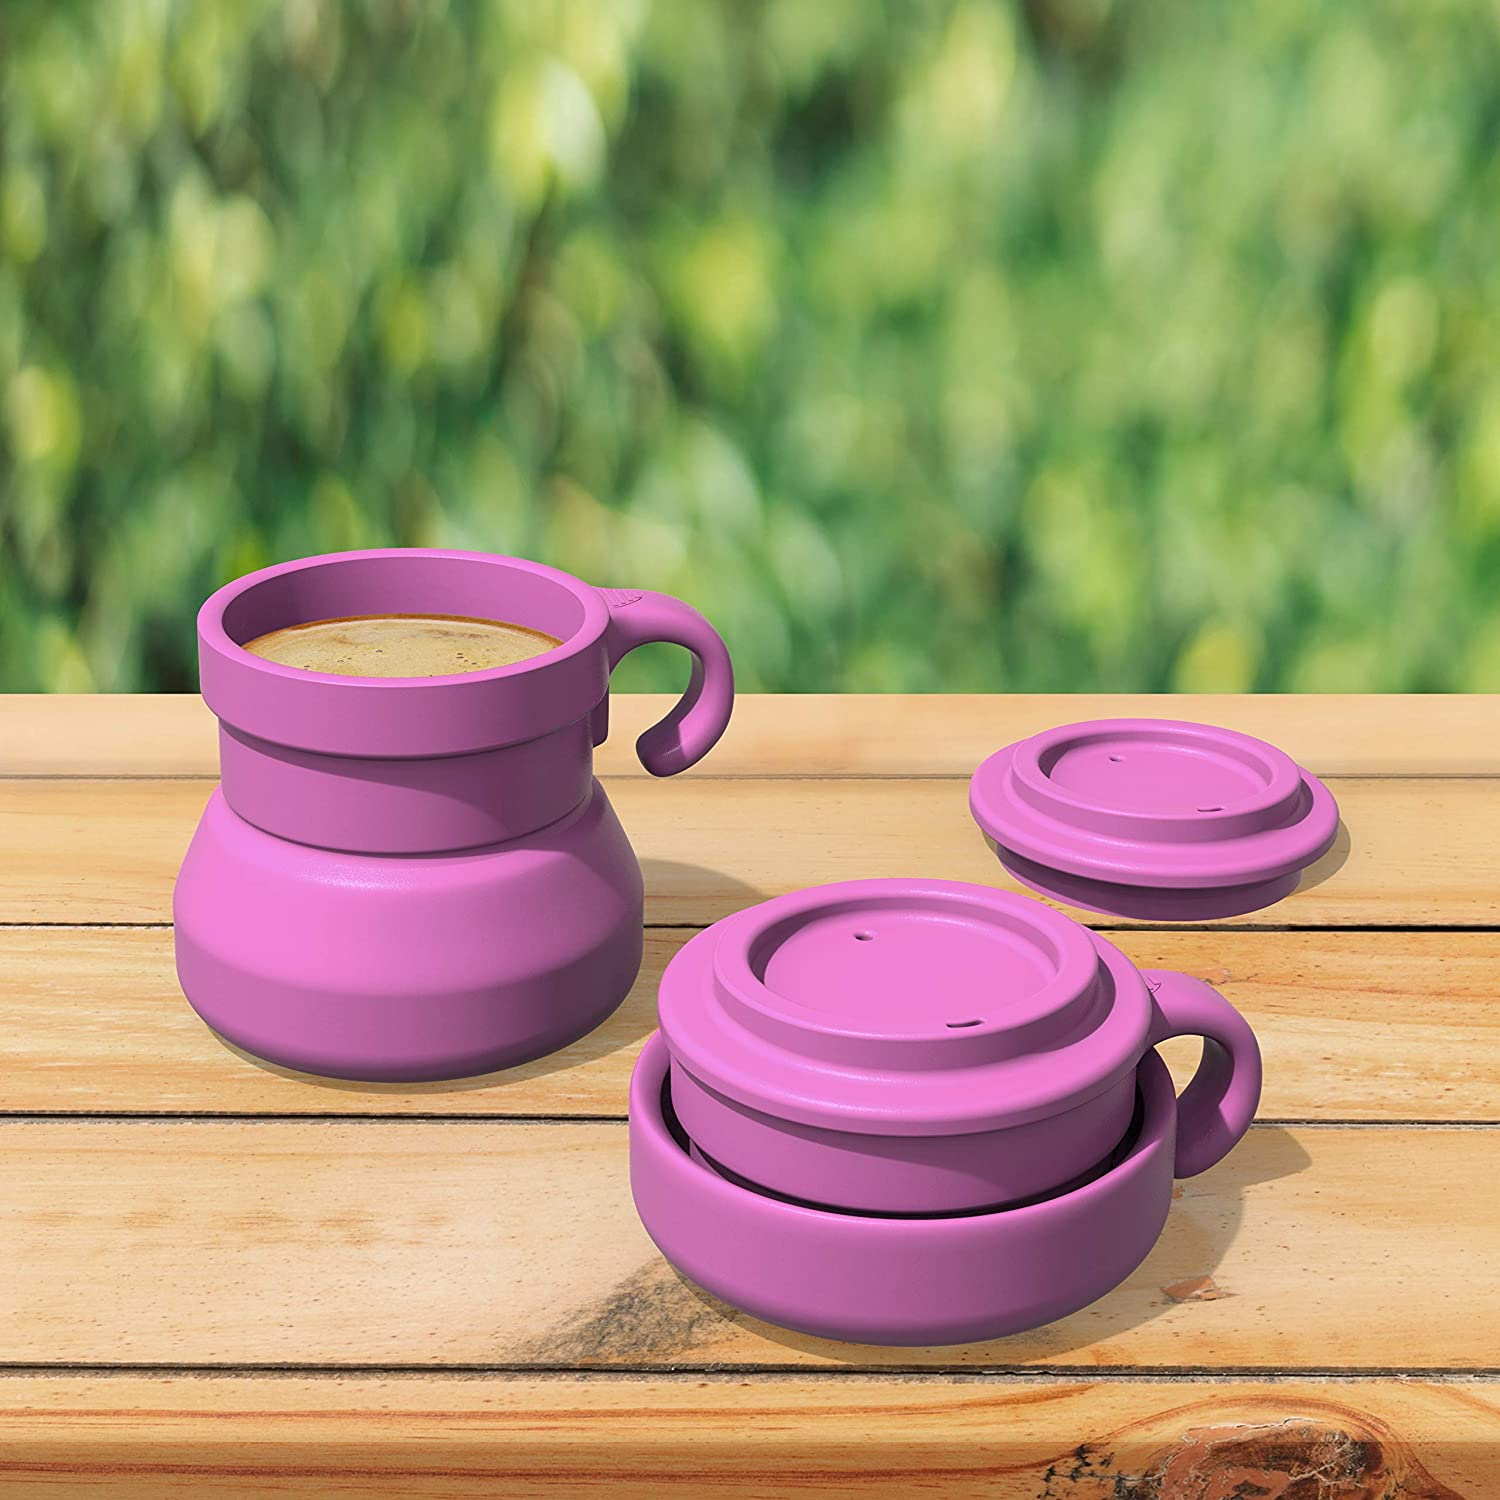 9 oz Mug with Lid Bakerpan Silicone Travel Collapsible Camping Cup Teal